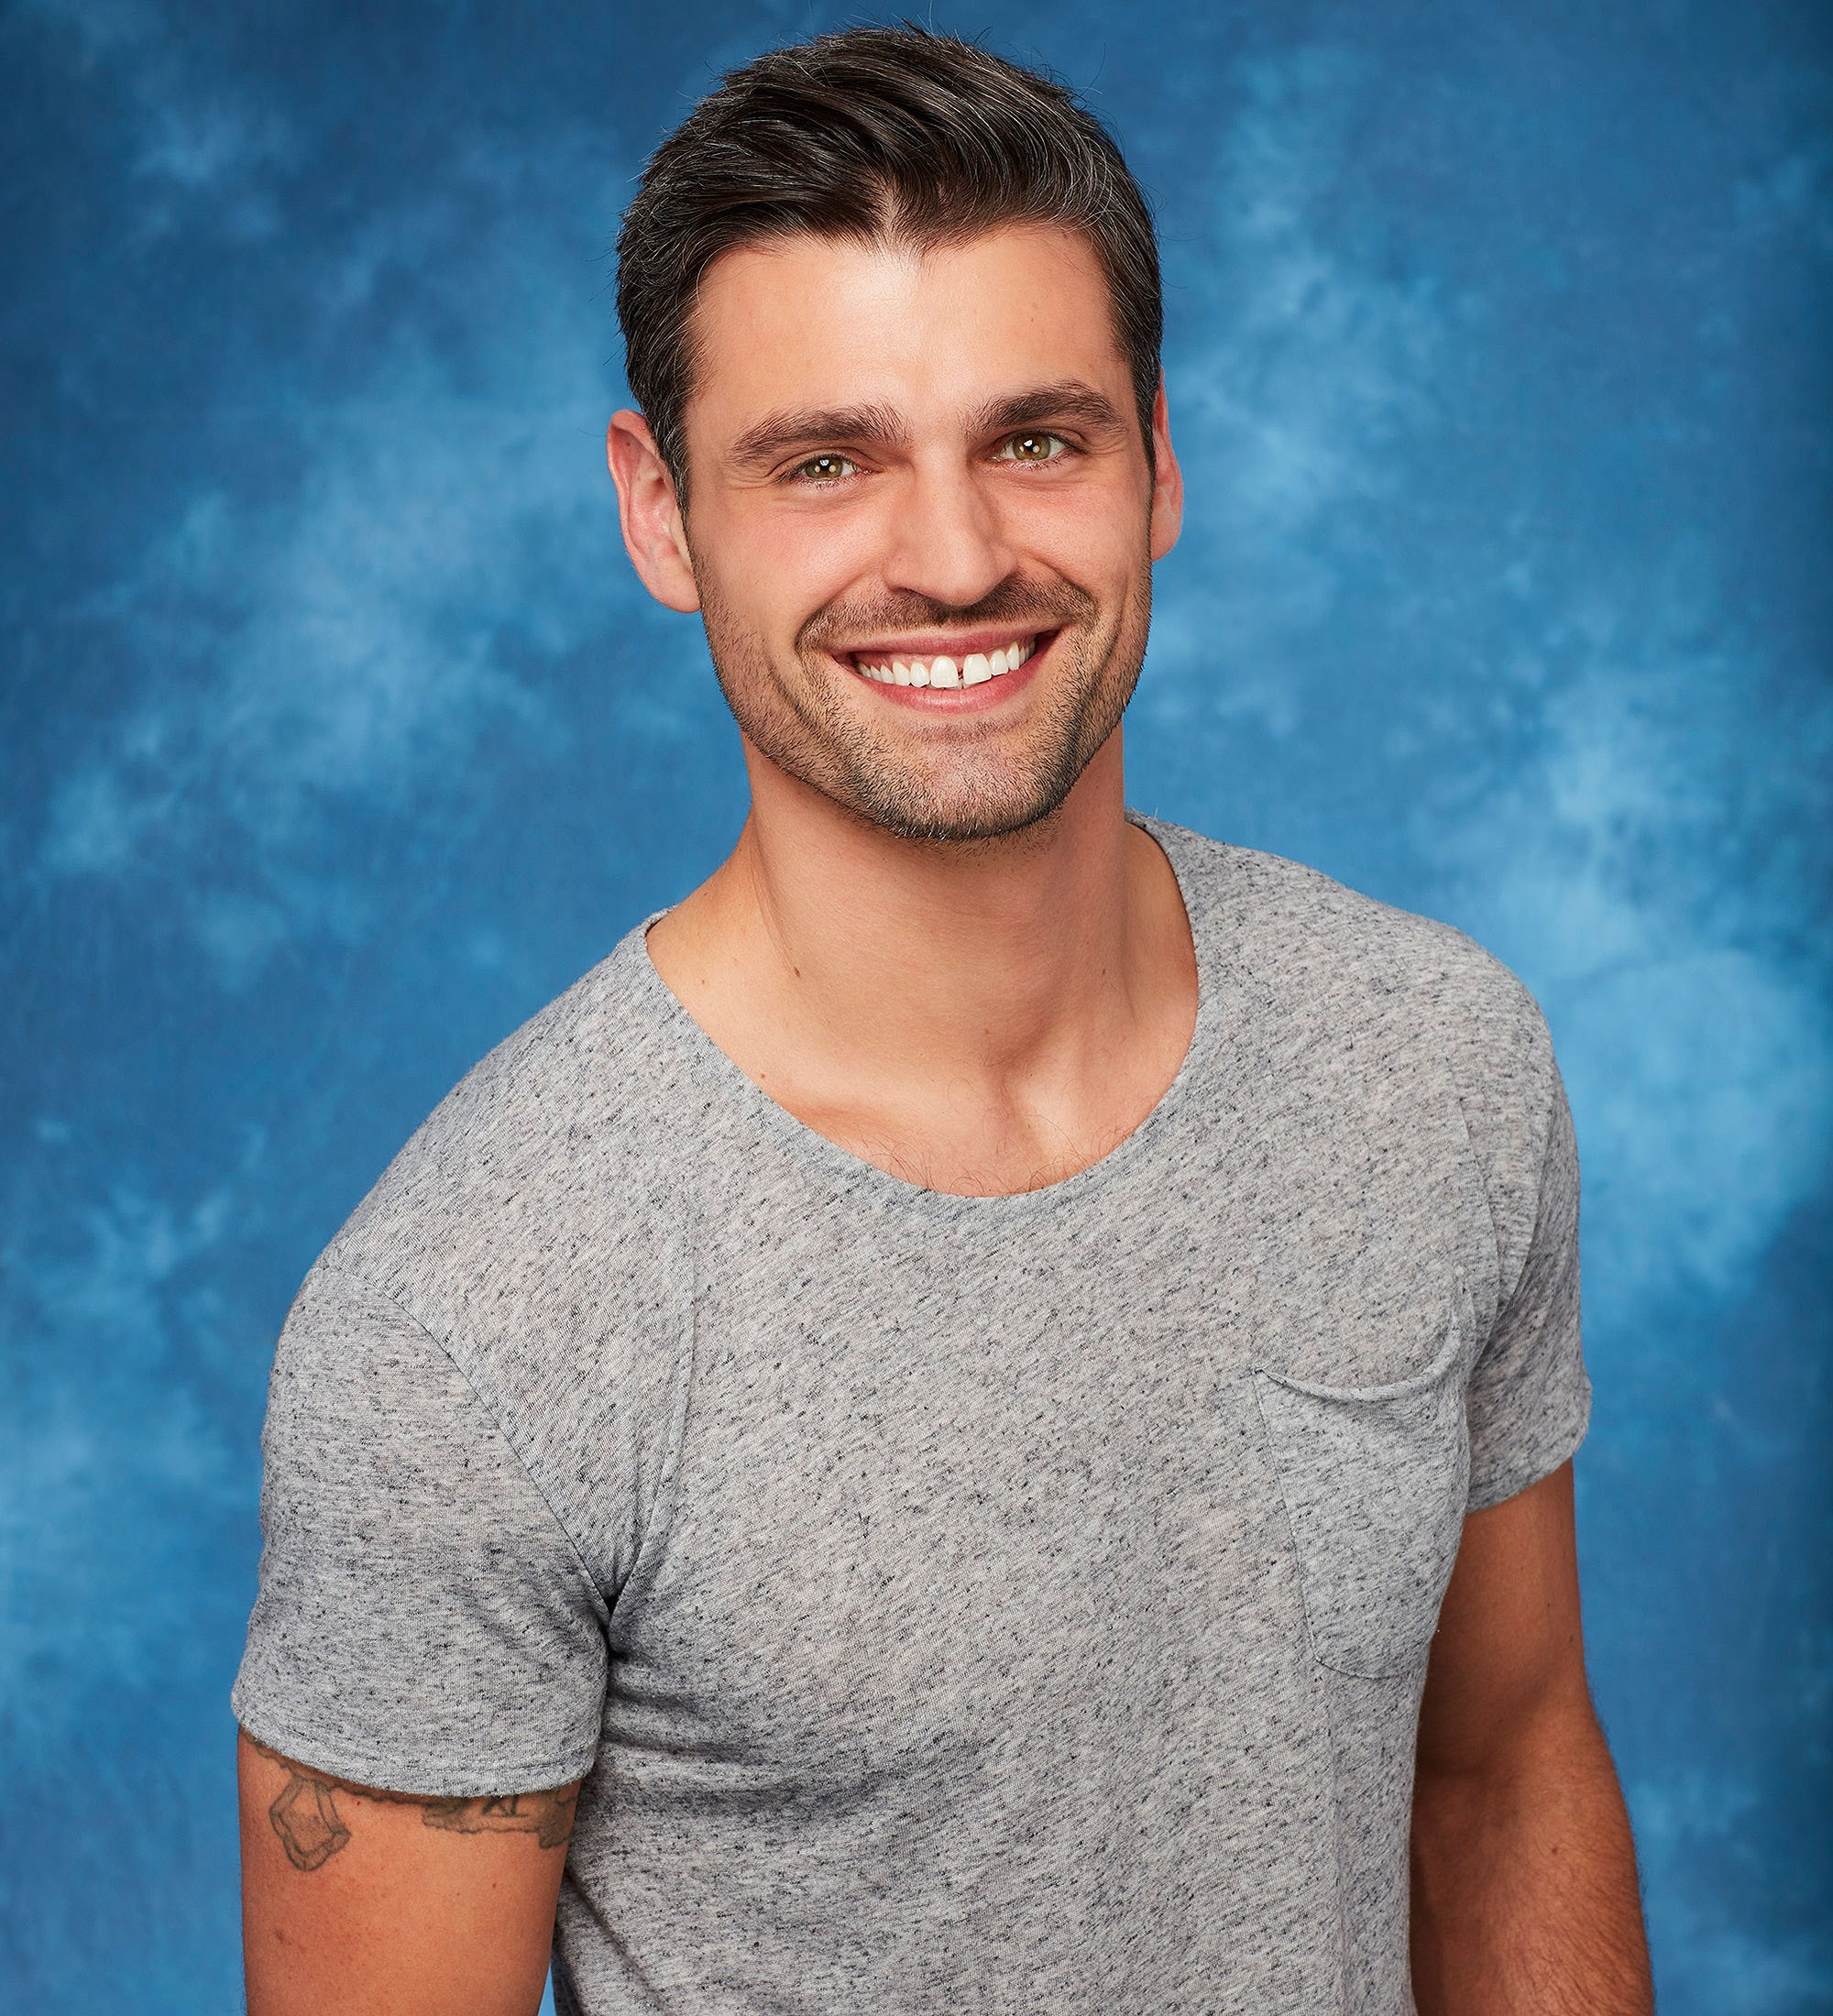 Who Will Be the Next 'Bachelor' for Season 22?